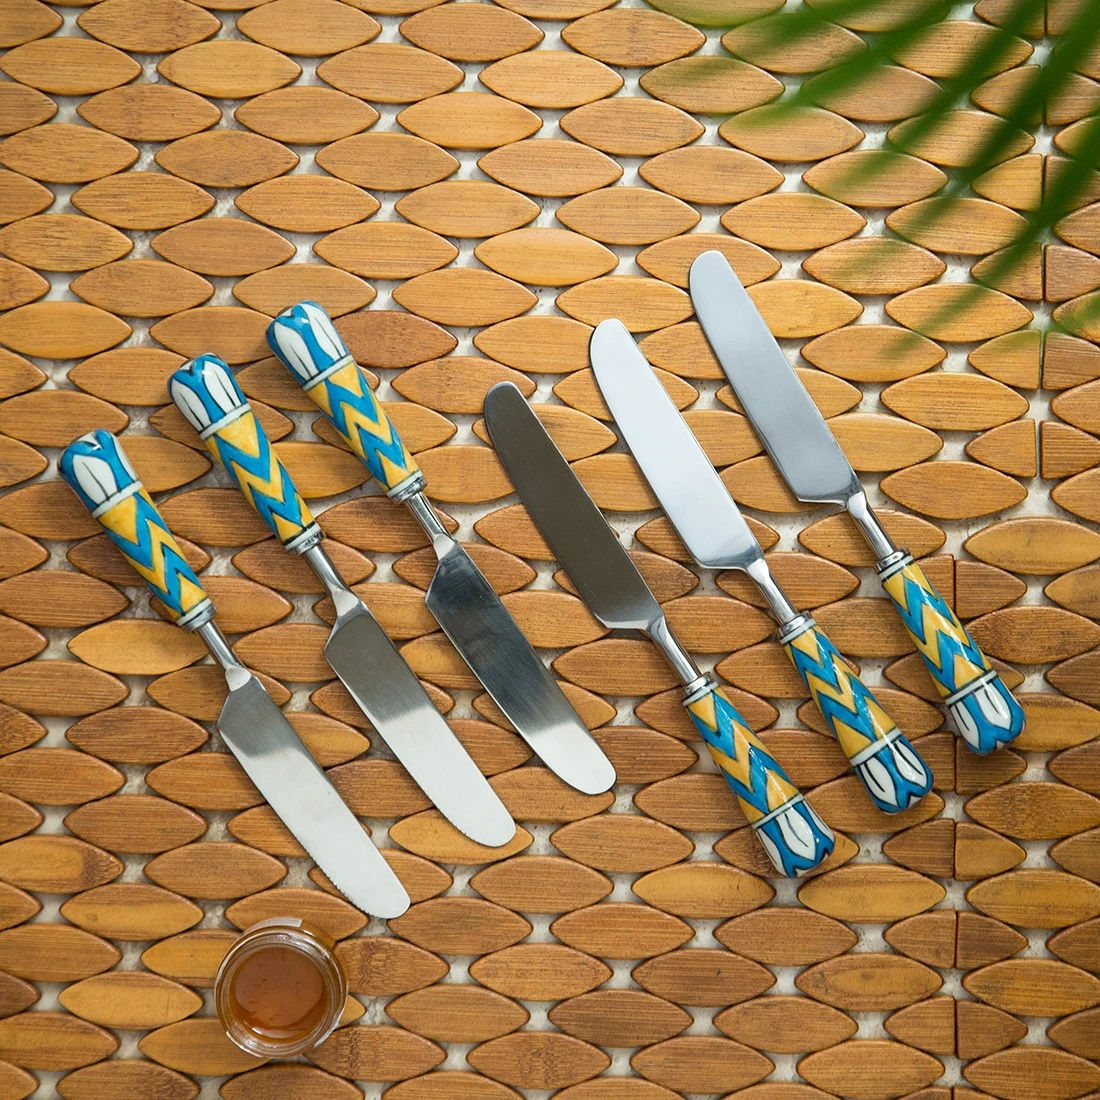 Moorni The Mughal Paich Daar Hand-Painted Table Knives In Stainless Steel & Ceramic (Set of 6)